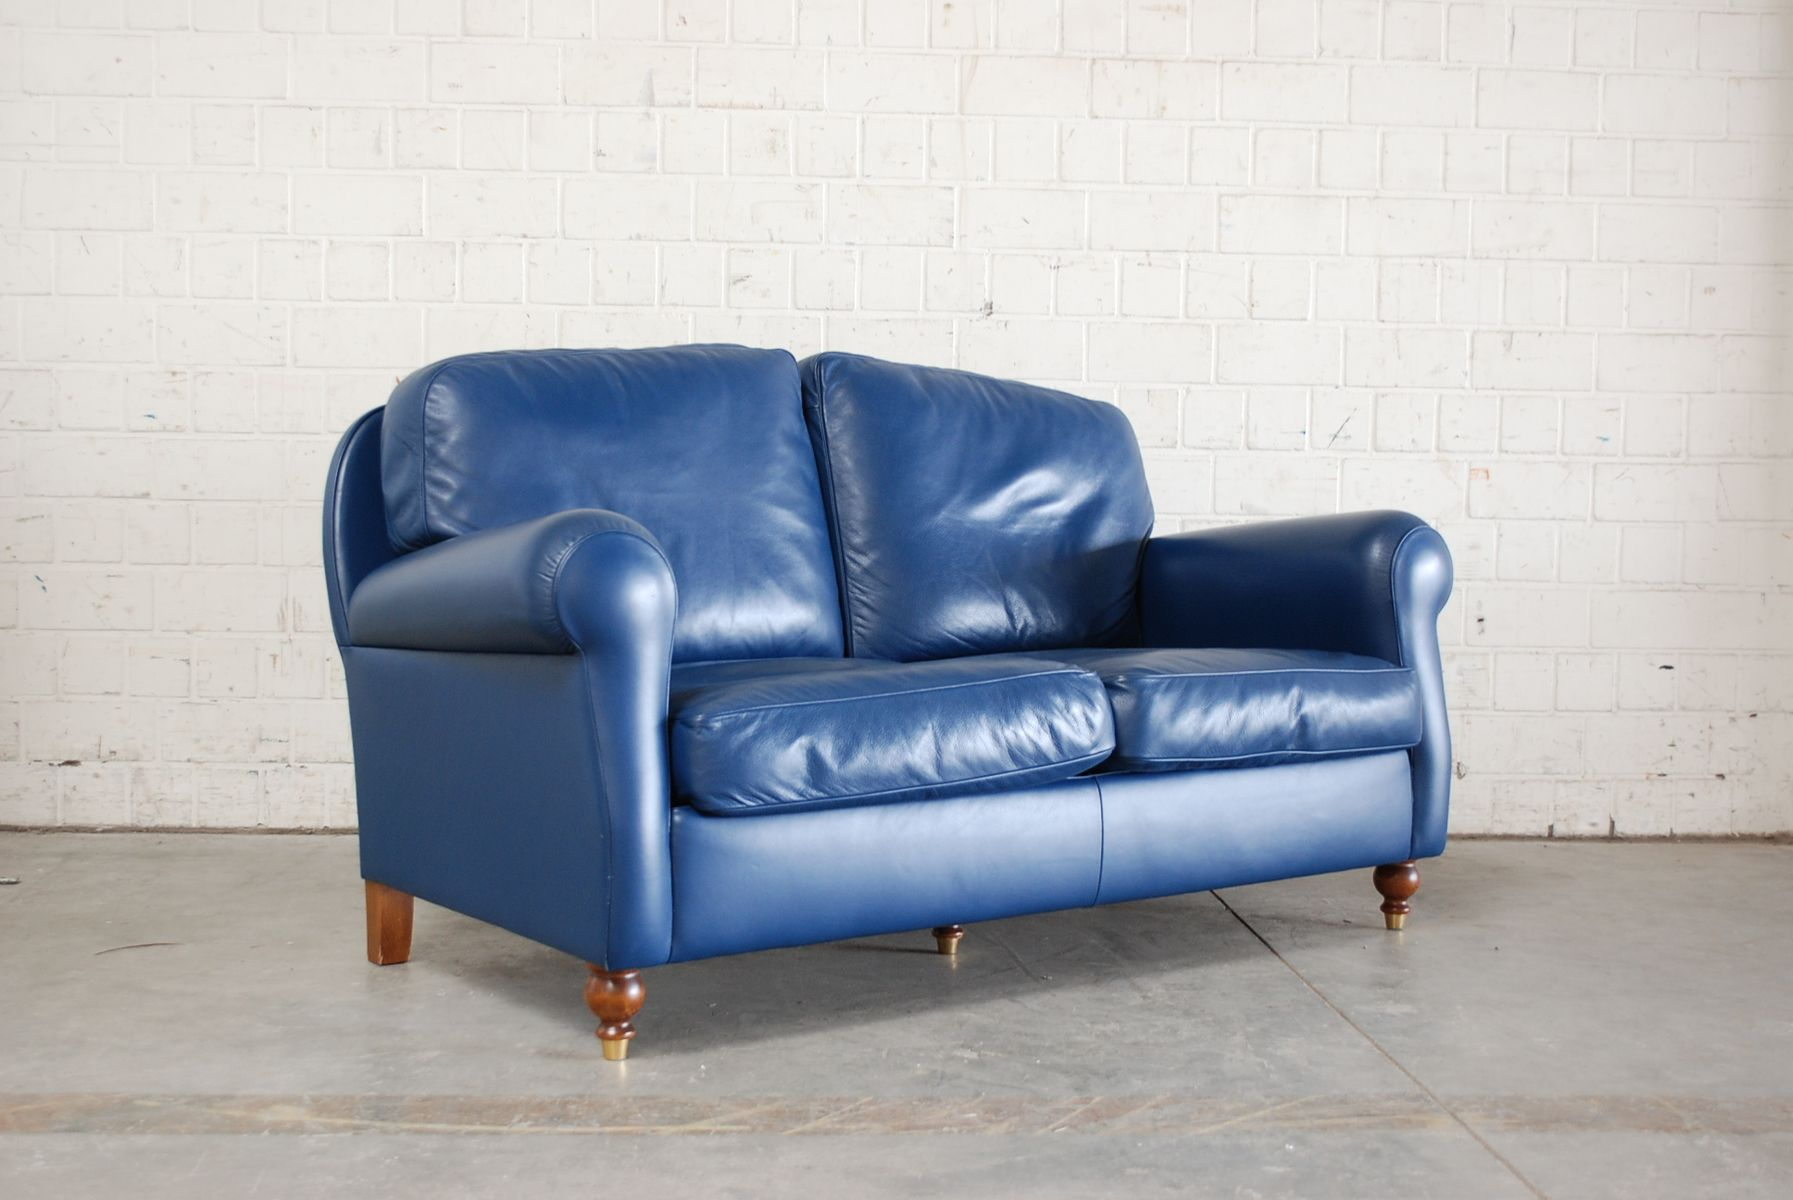 Blue leather george sofa from poltrona frau 1999 for sale for Blue leather sofa